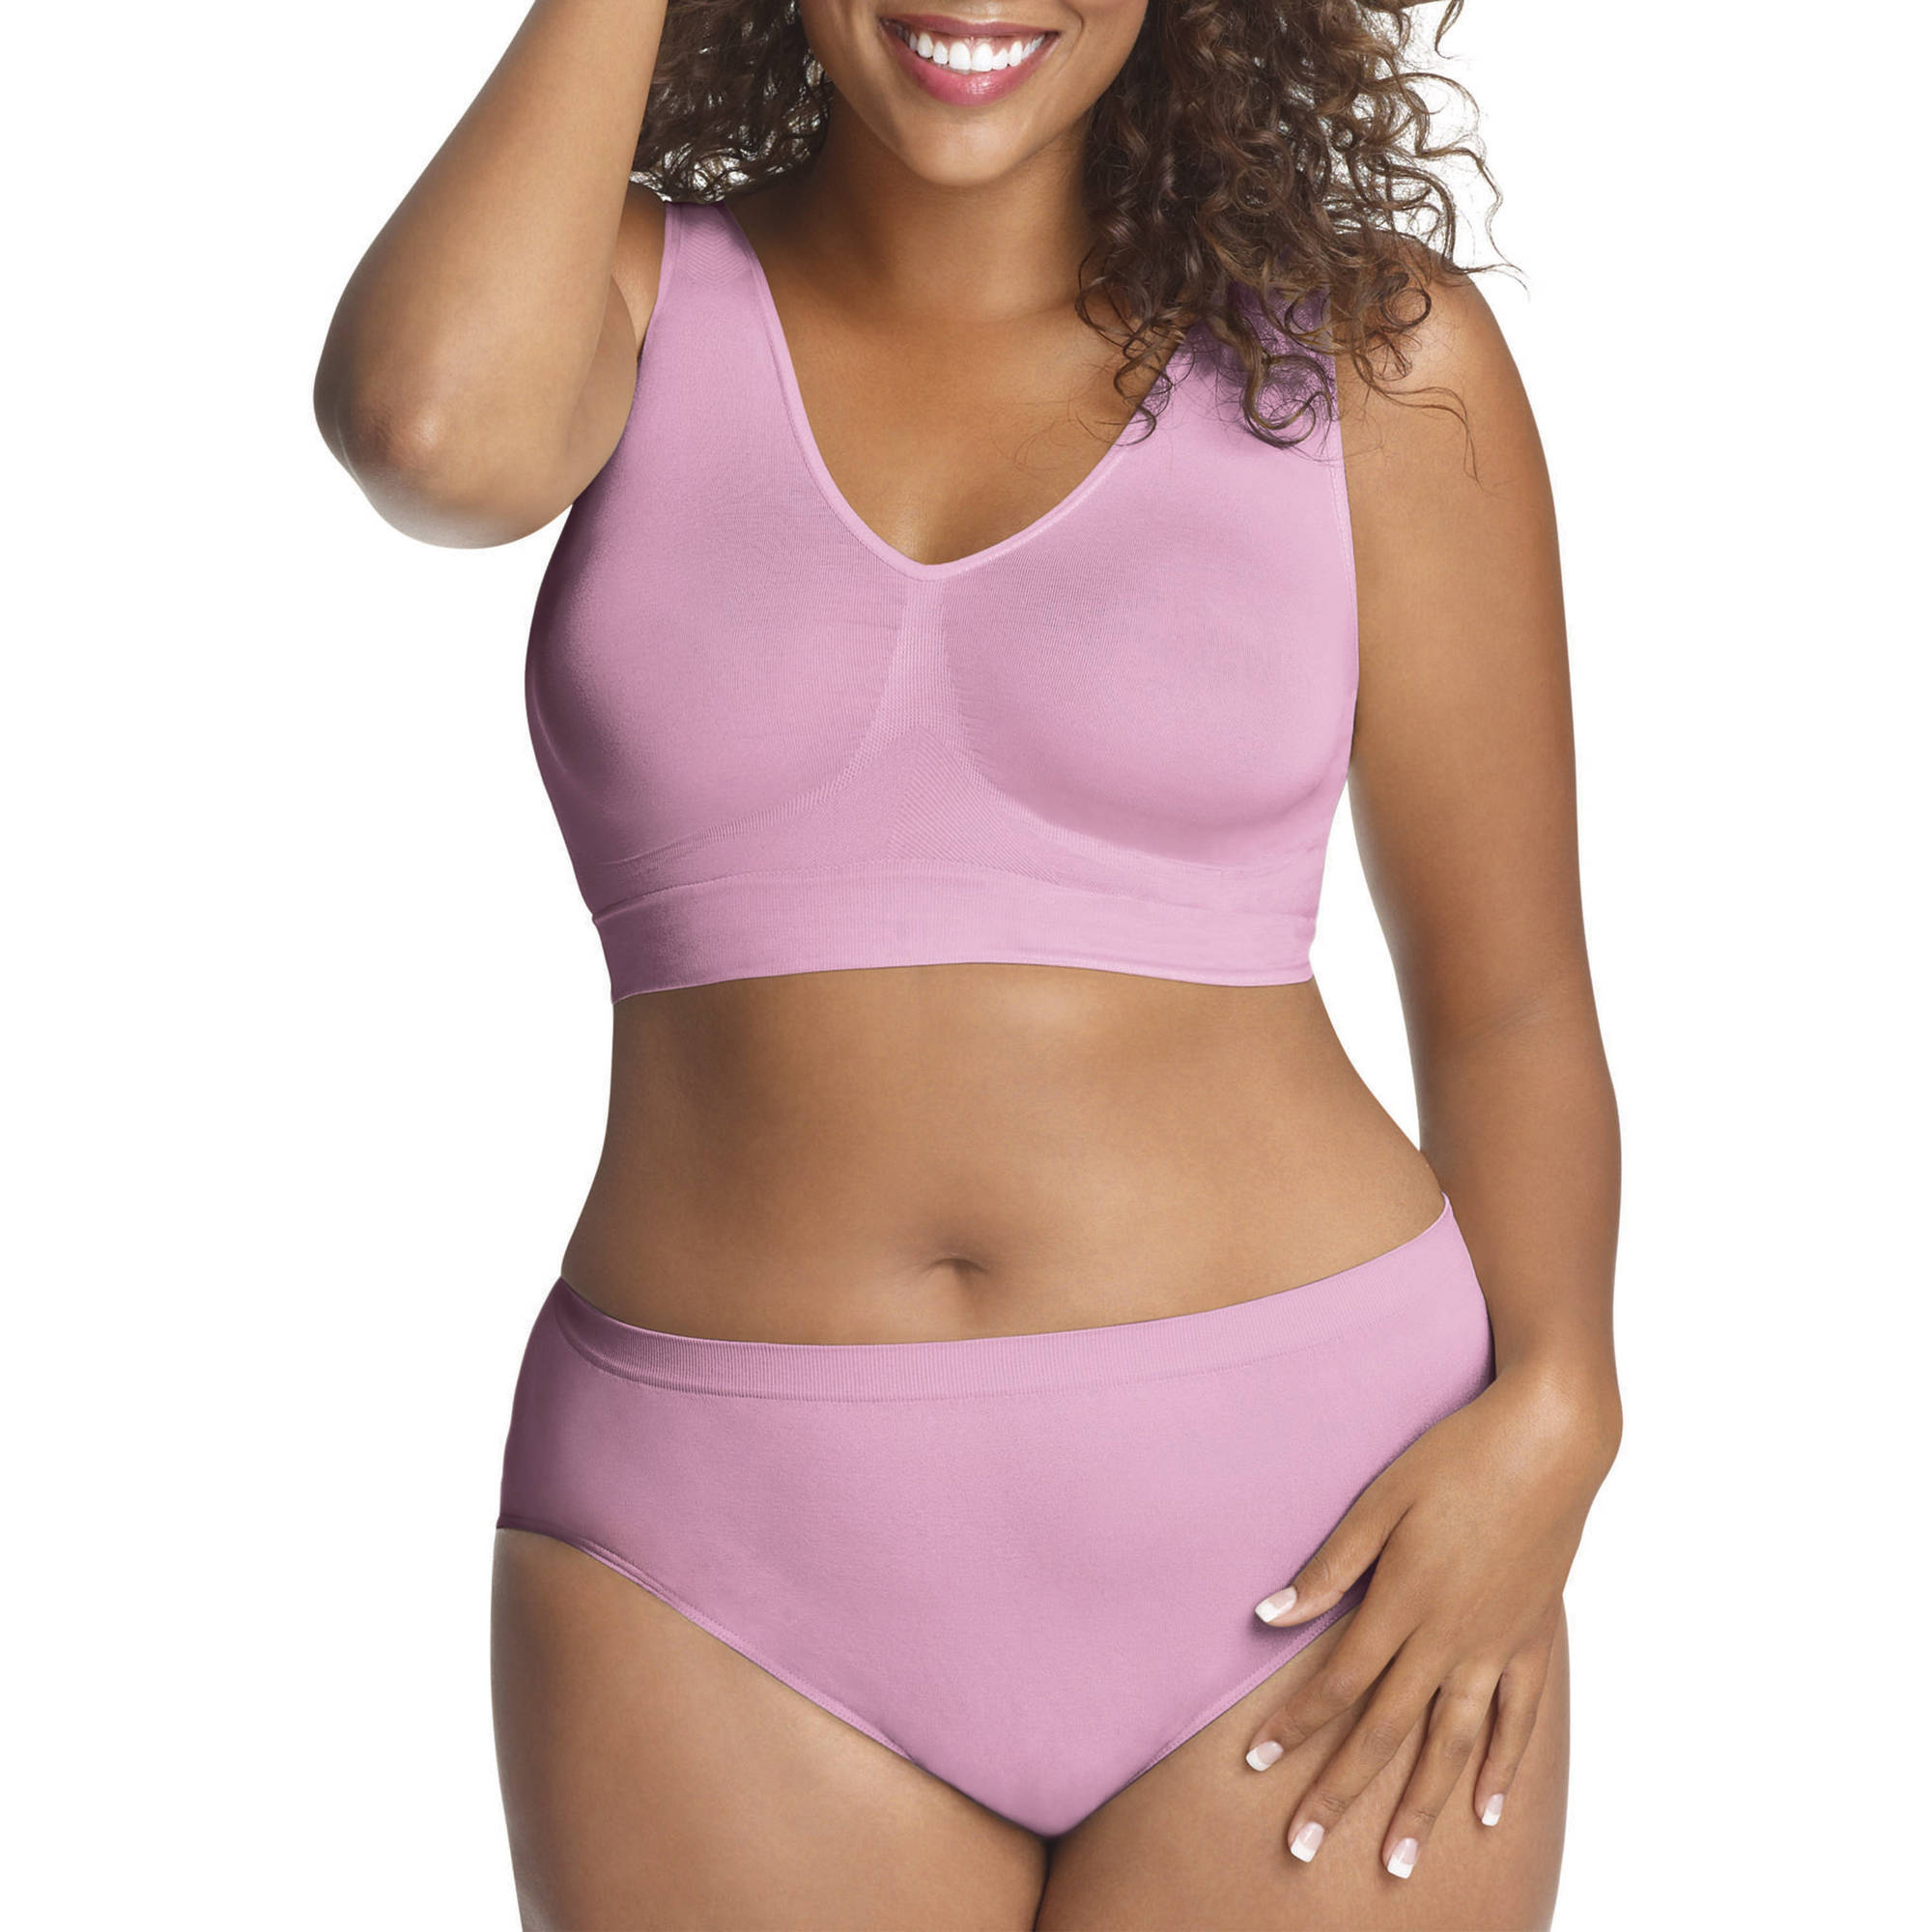 Just My Size Pure Comfort Seamless Wirefree Bra, Style 1263